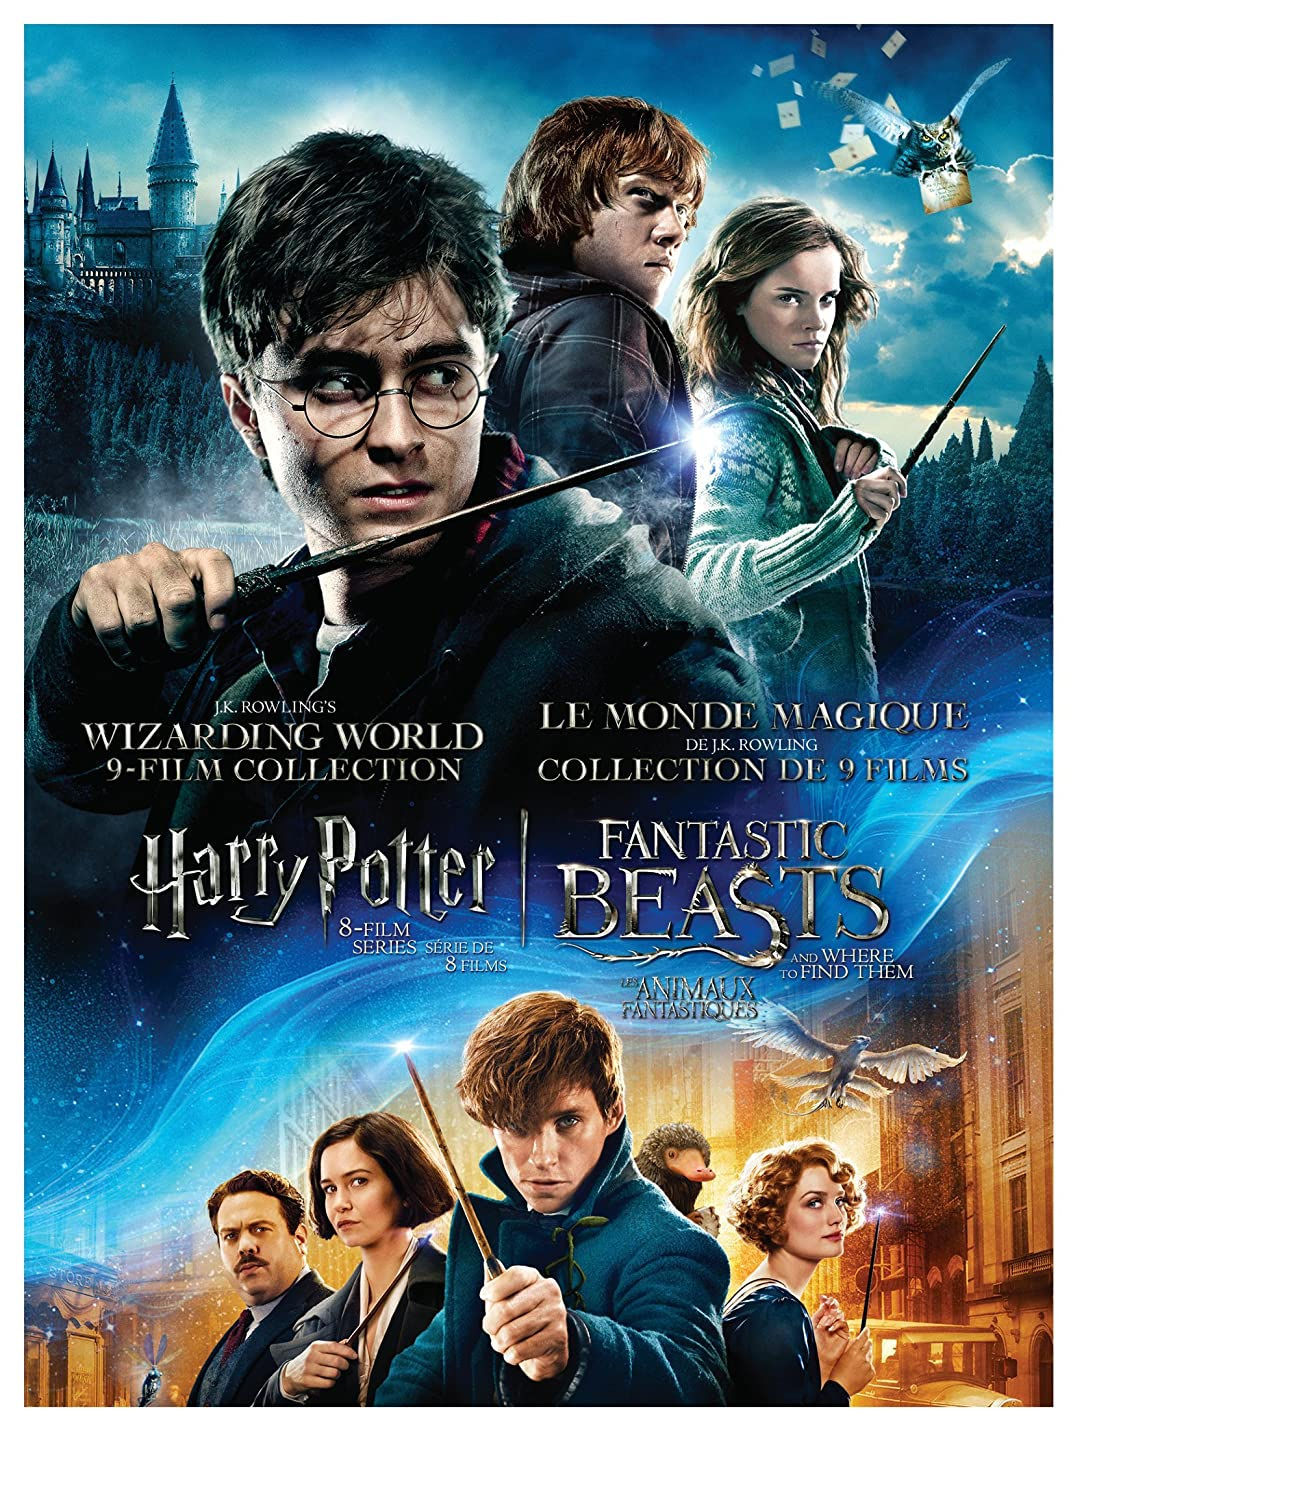 J.K. Rowling's Wizarding World 9-Film Collection: Harry Potter 8-Film Series David Yates Daniel Radcliffe Rupert Grint Emma Watson